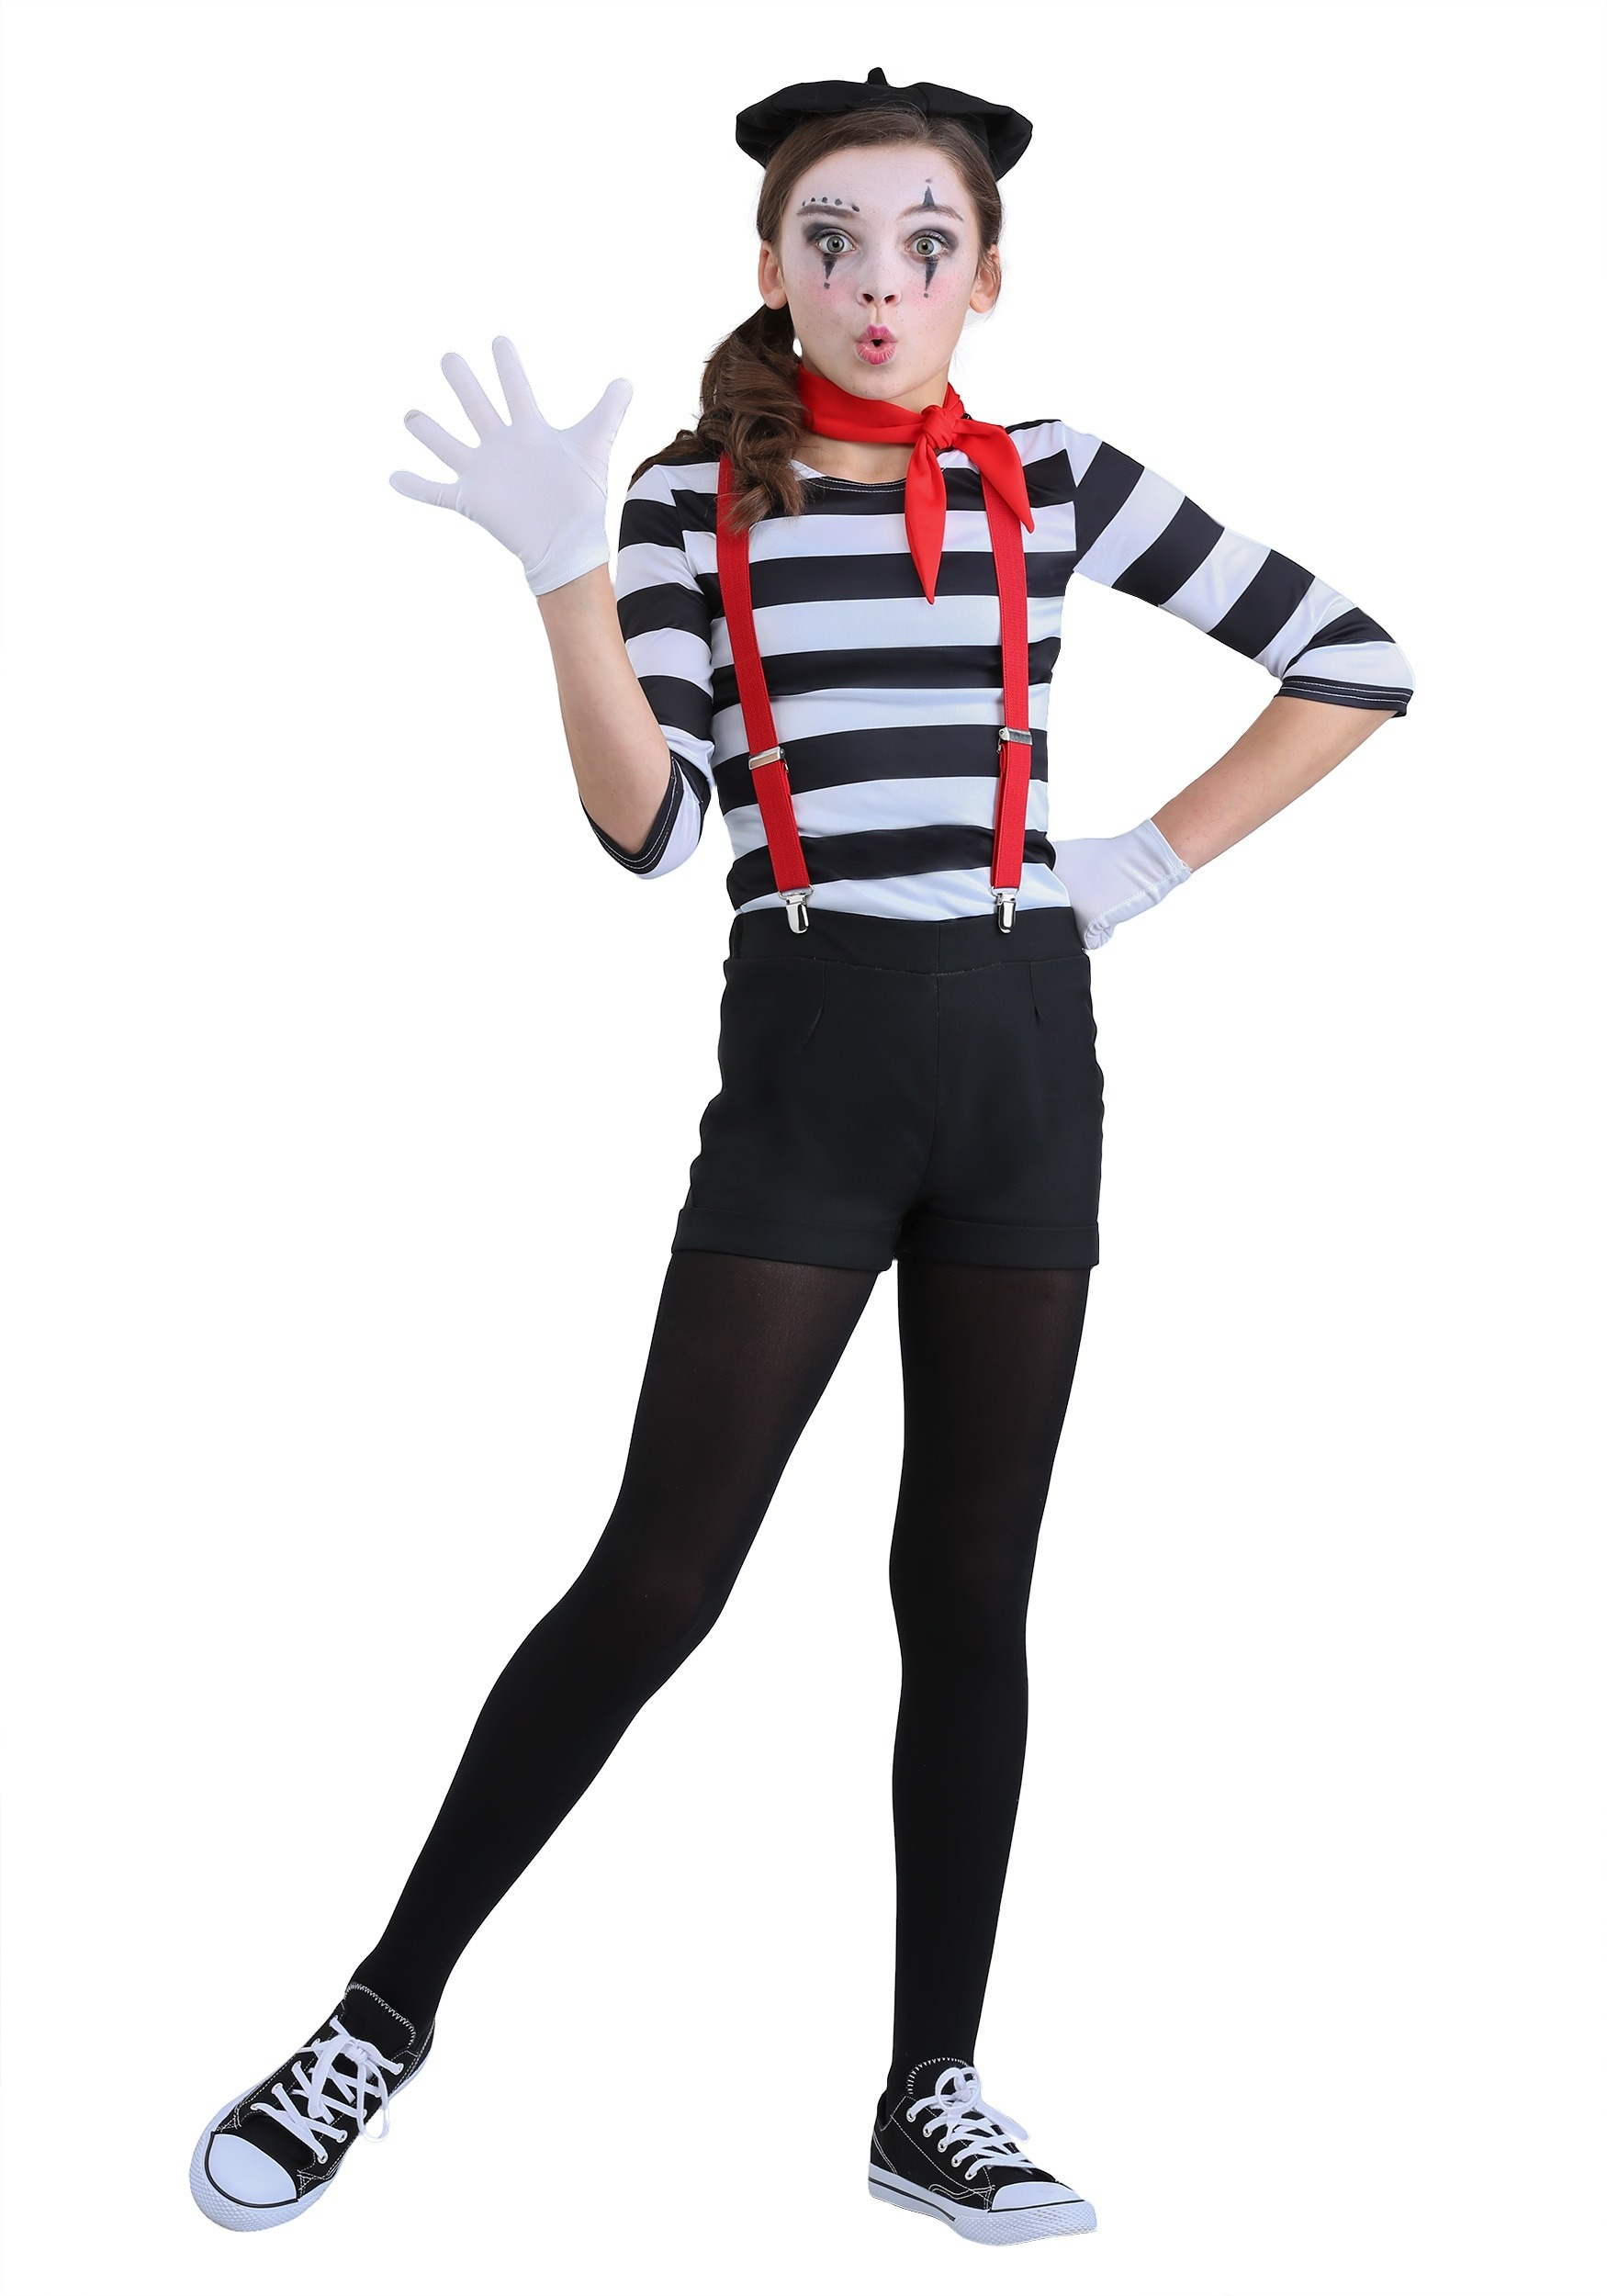 Girlu0027s Mime Costume  sc 1 st  Halloween Costumes & Mime Costume for Girls